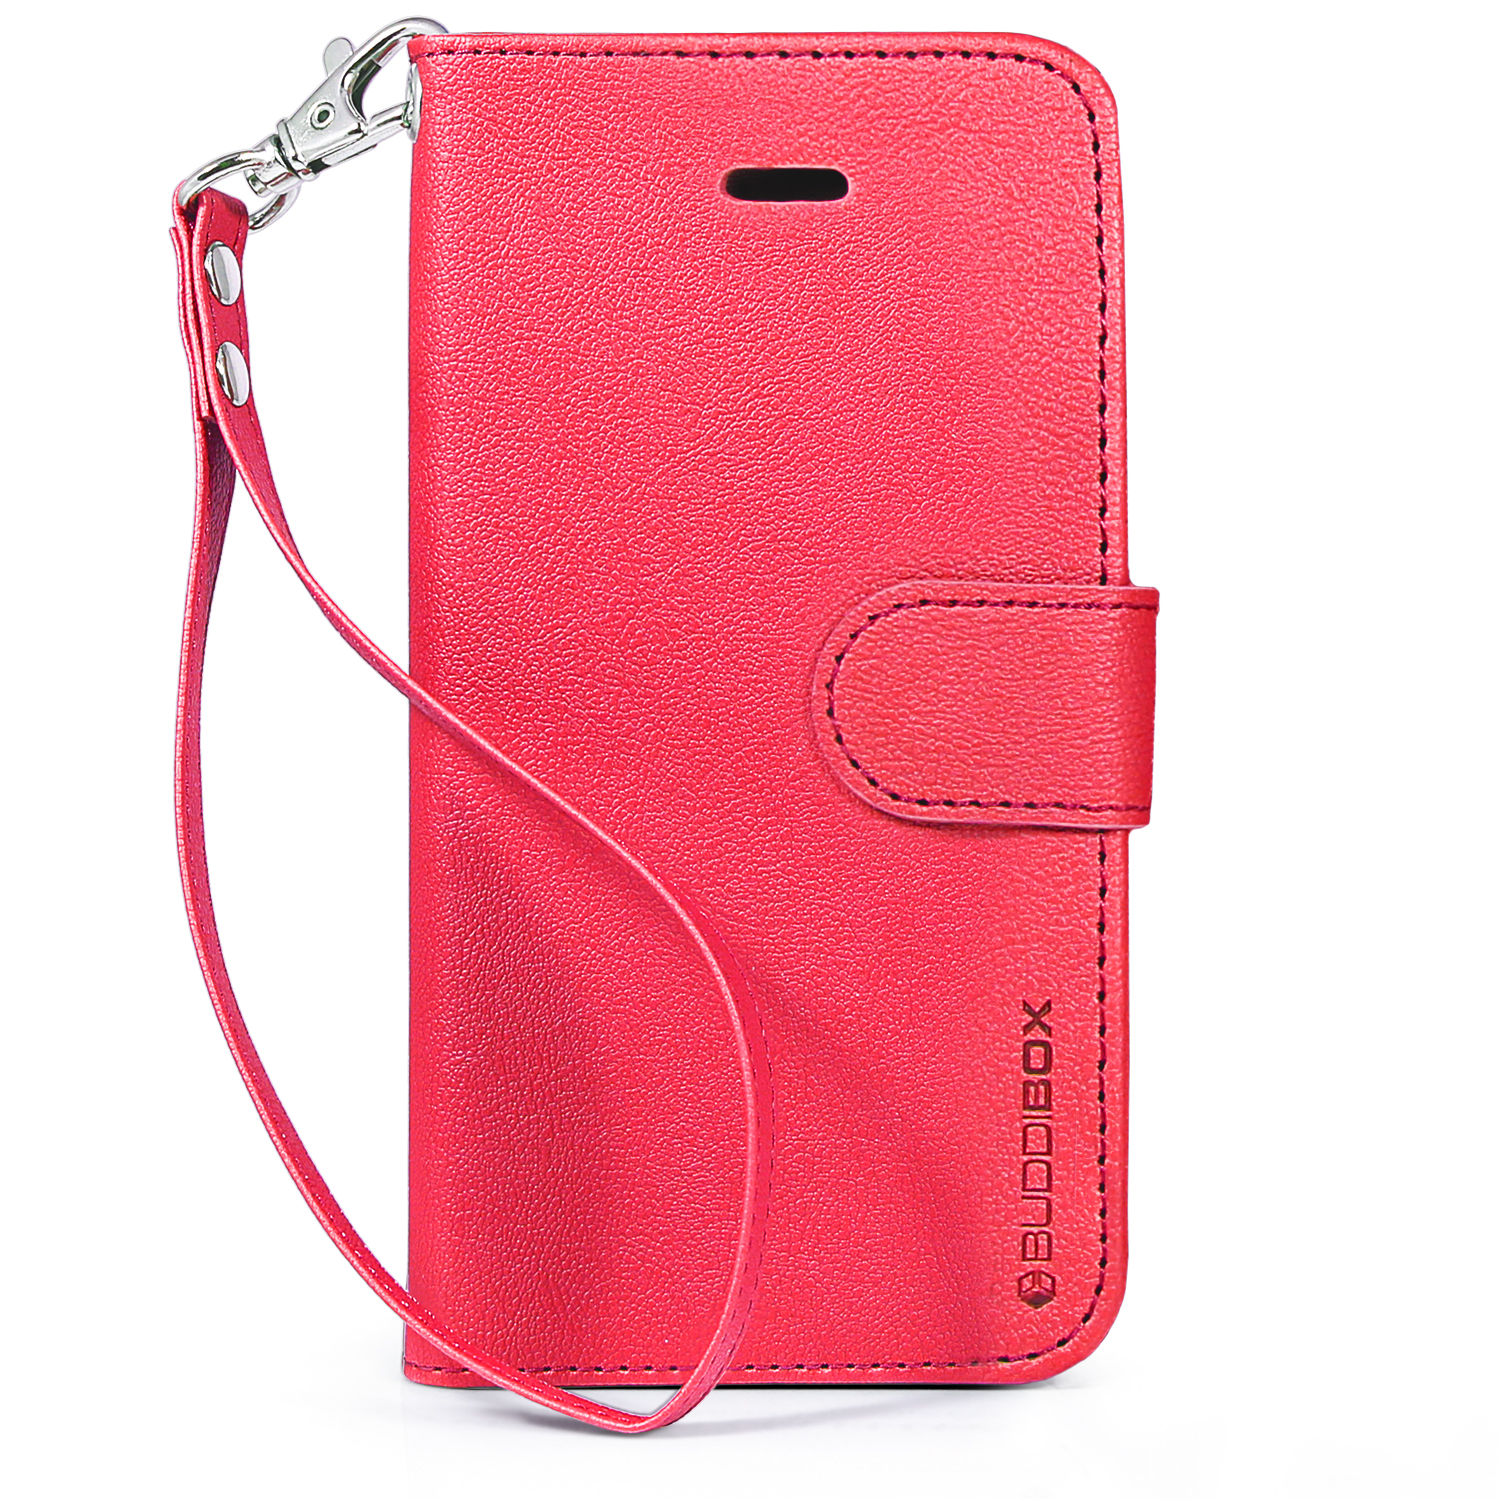 iphone 5c wallet cases buddibox premium leather wallet for apple iphone 5c 14715